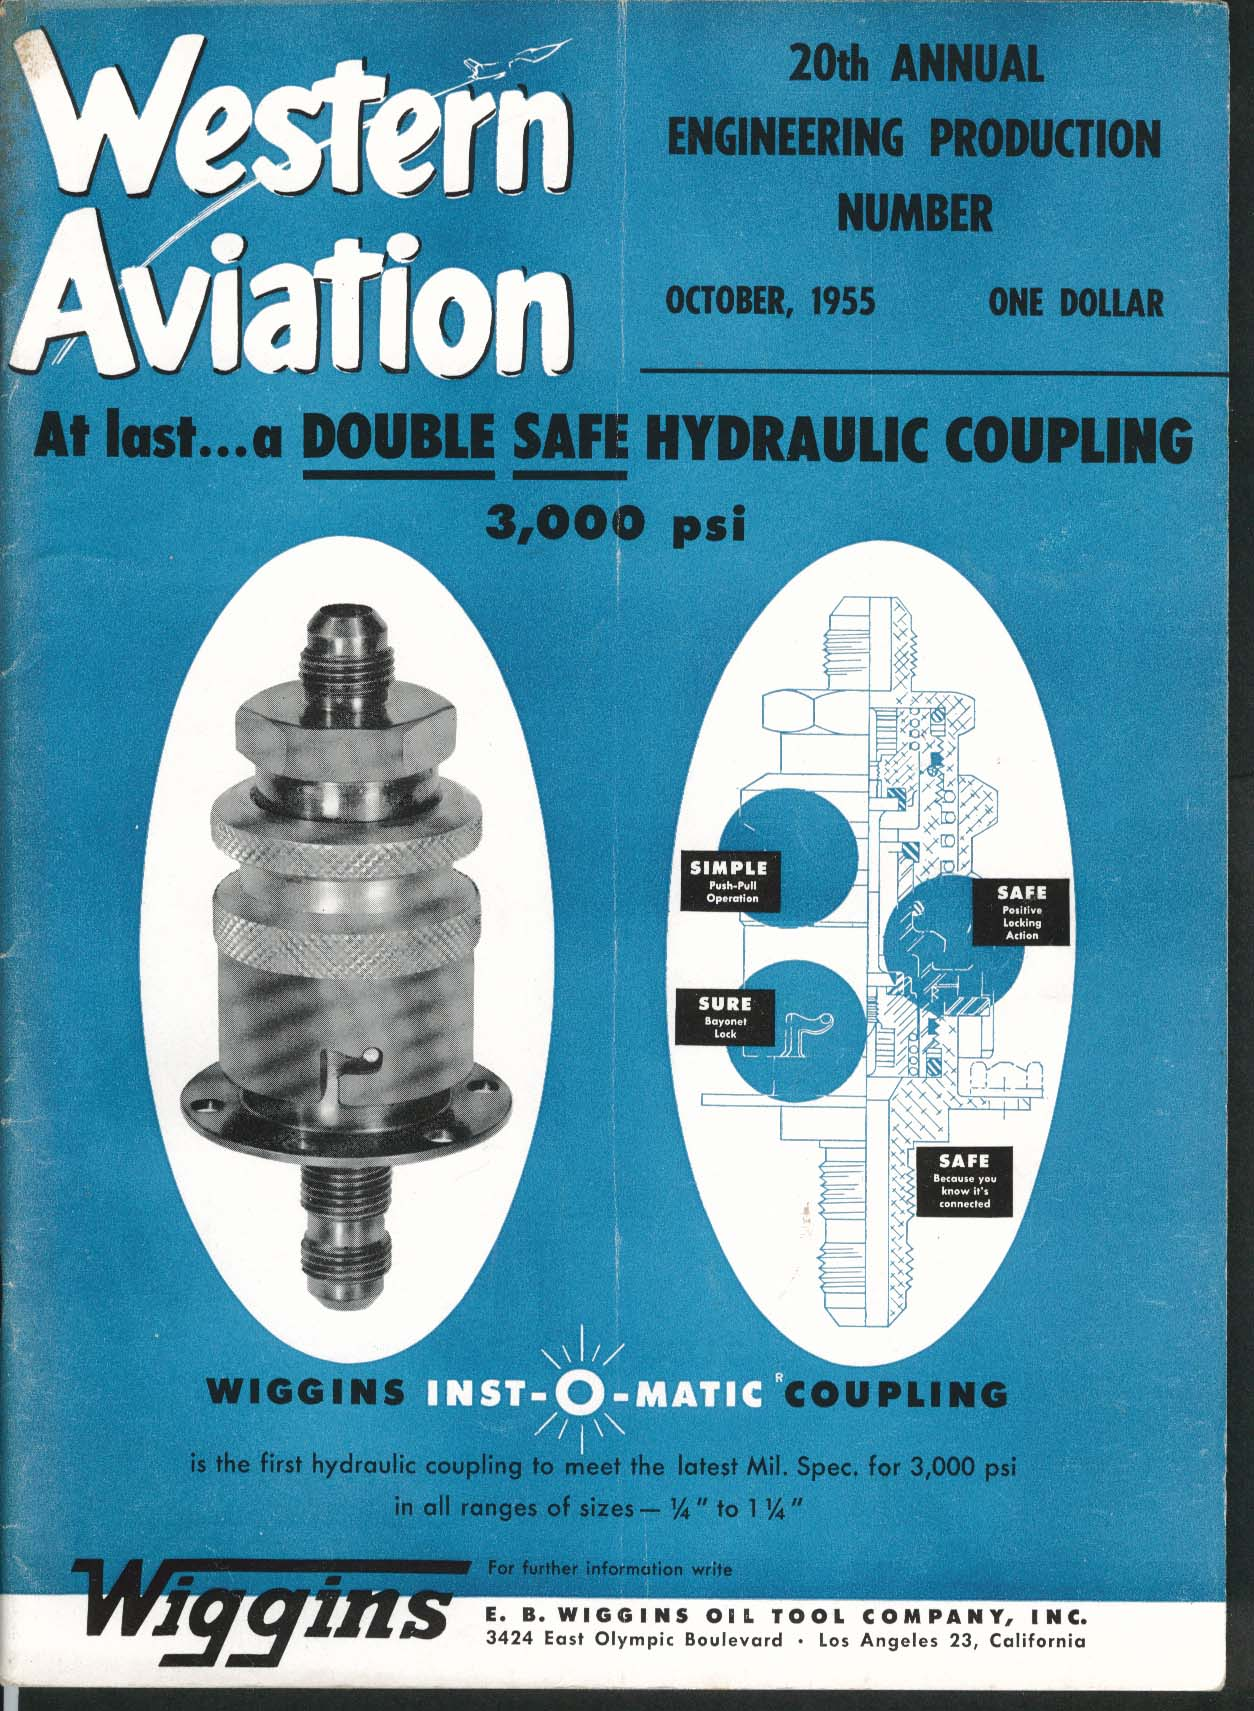 WESTERN AVIATION DC-8 Hydraulic Couplings 10 1955